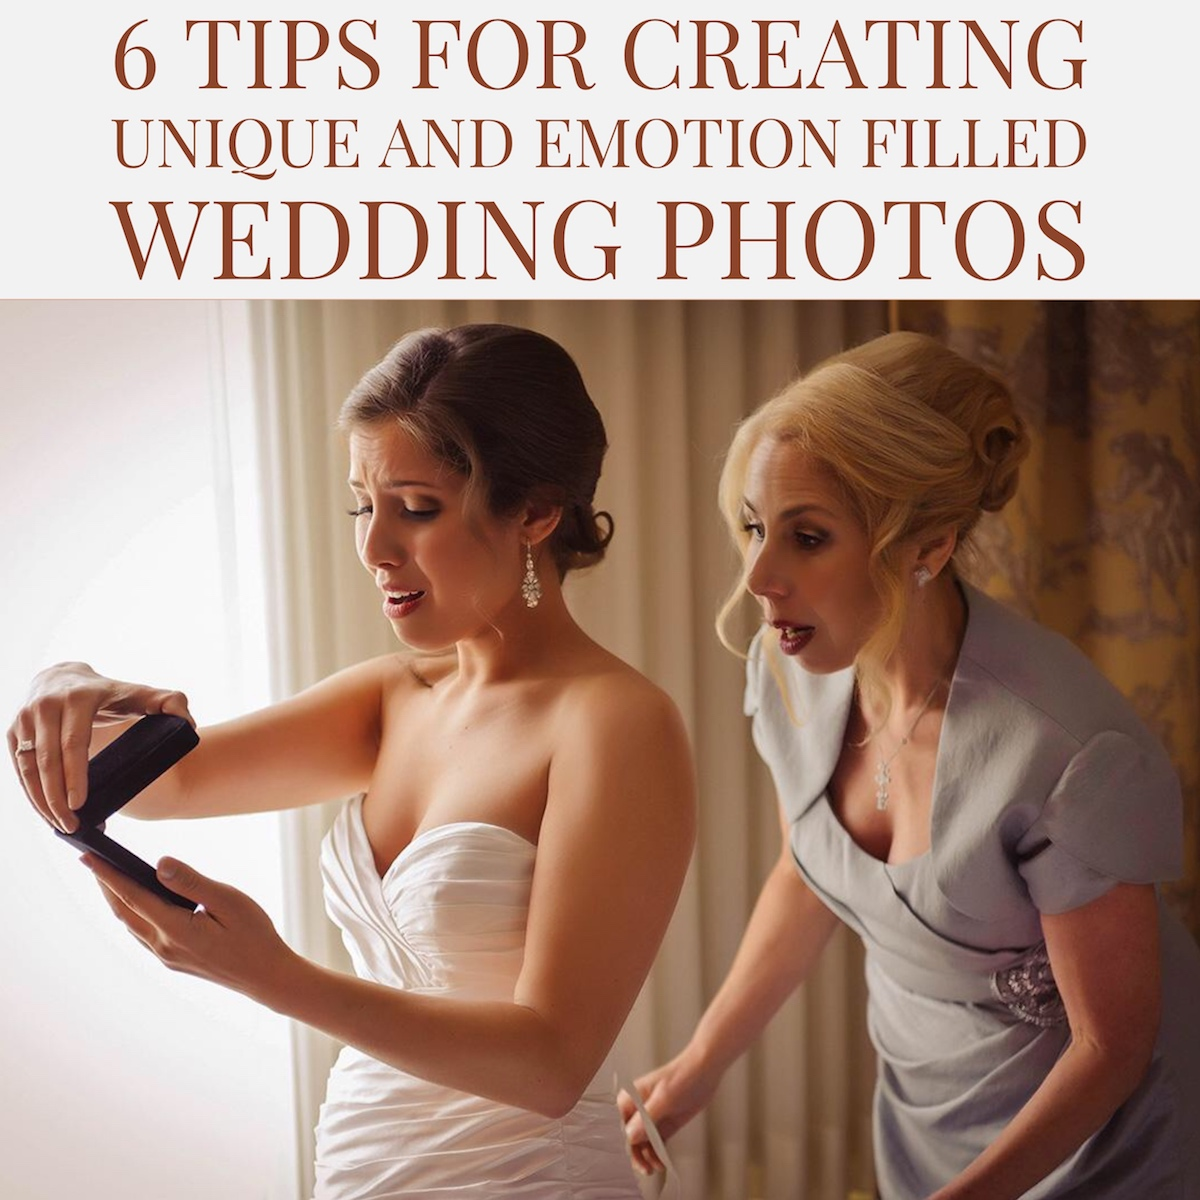 6 Tips for Creating Unique and Emotion Filled Wedding Photos